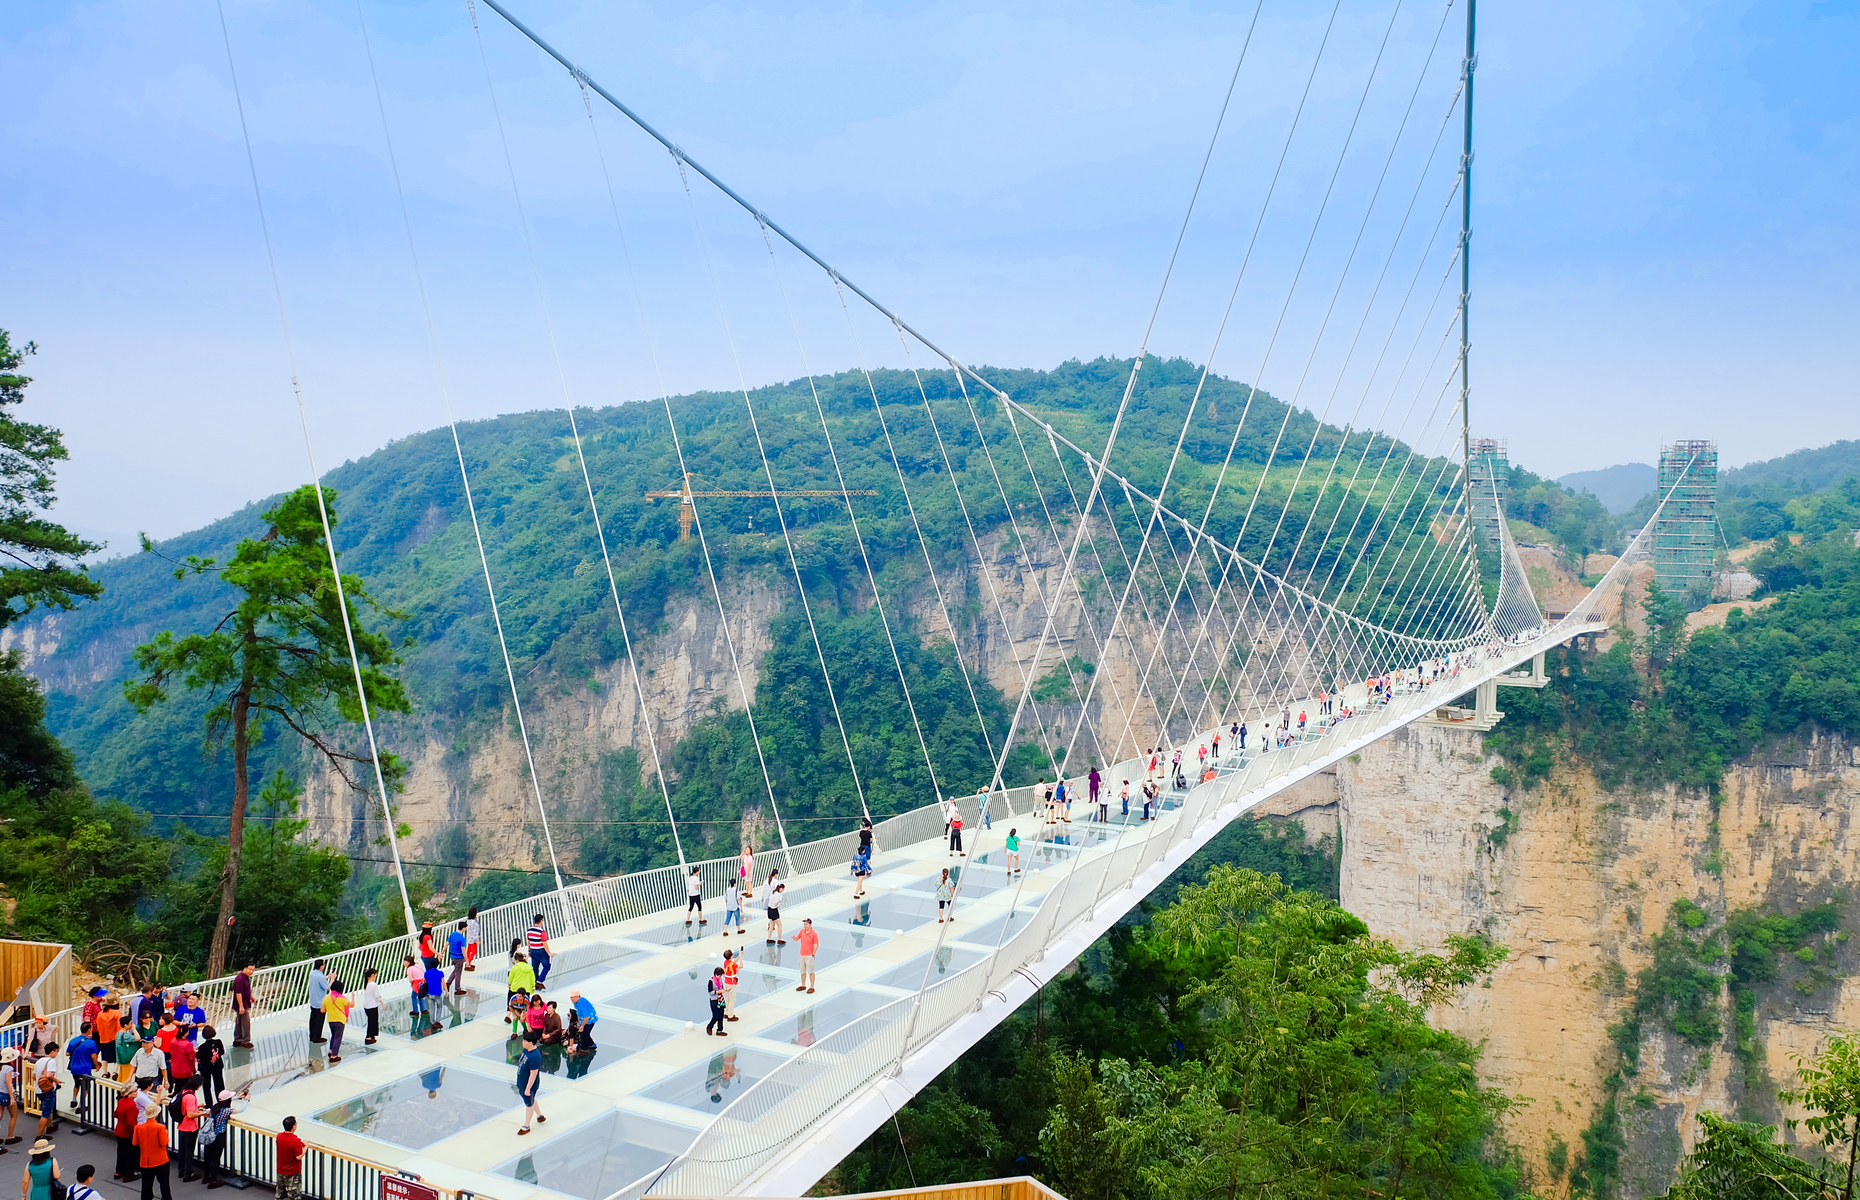 Slide 15 of 16: The glass-bottomed bridge over the Zhangjiajie Grand Canyon is 430 metres (1,411 feet) long. A few days after opening in 2016, the bridge had to close due to an overwhelming number of visitors. It has since reopened.